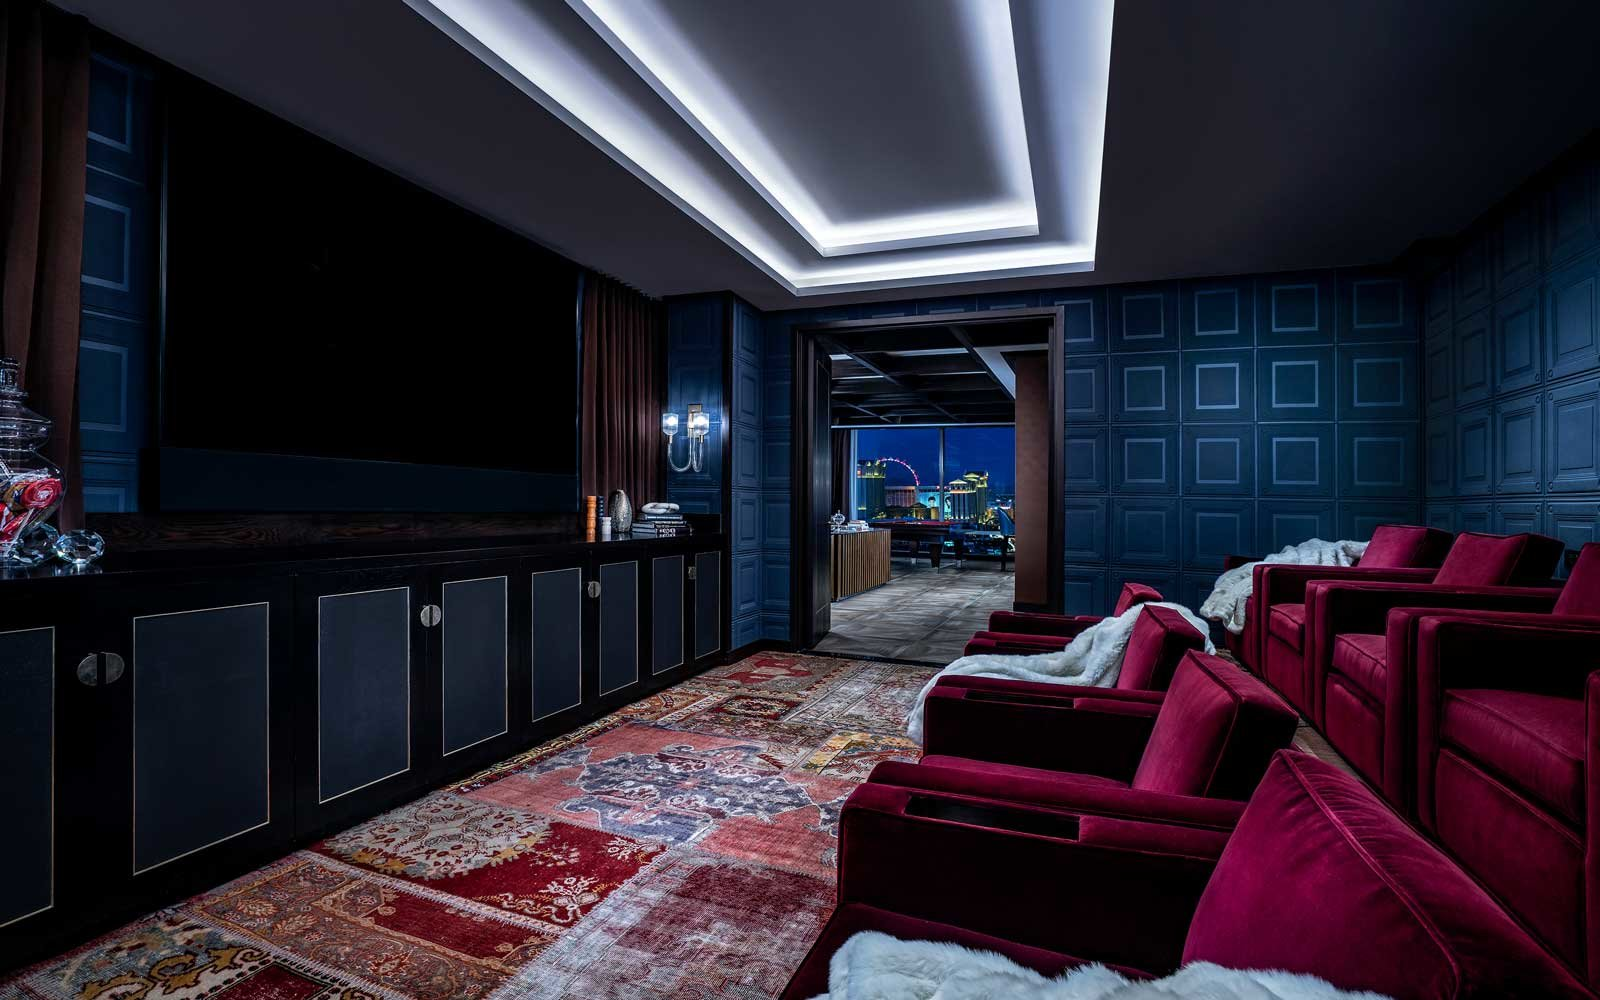 Enjoy movies from the comfort of your room at the cinema suite.